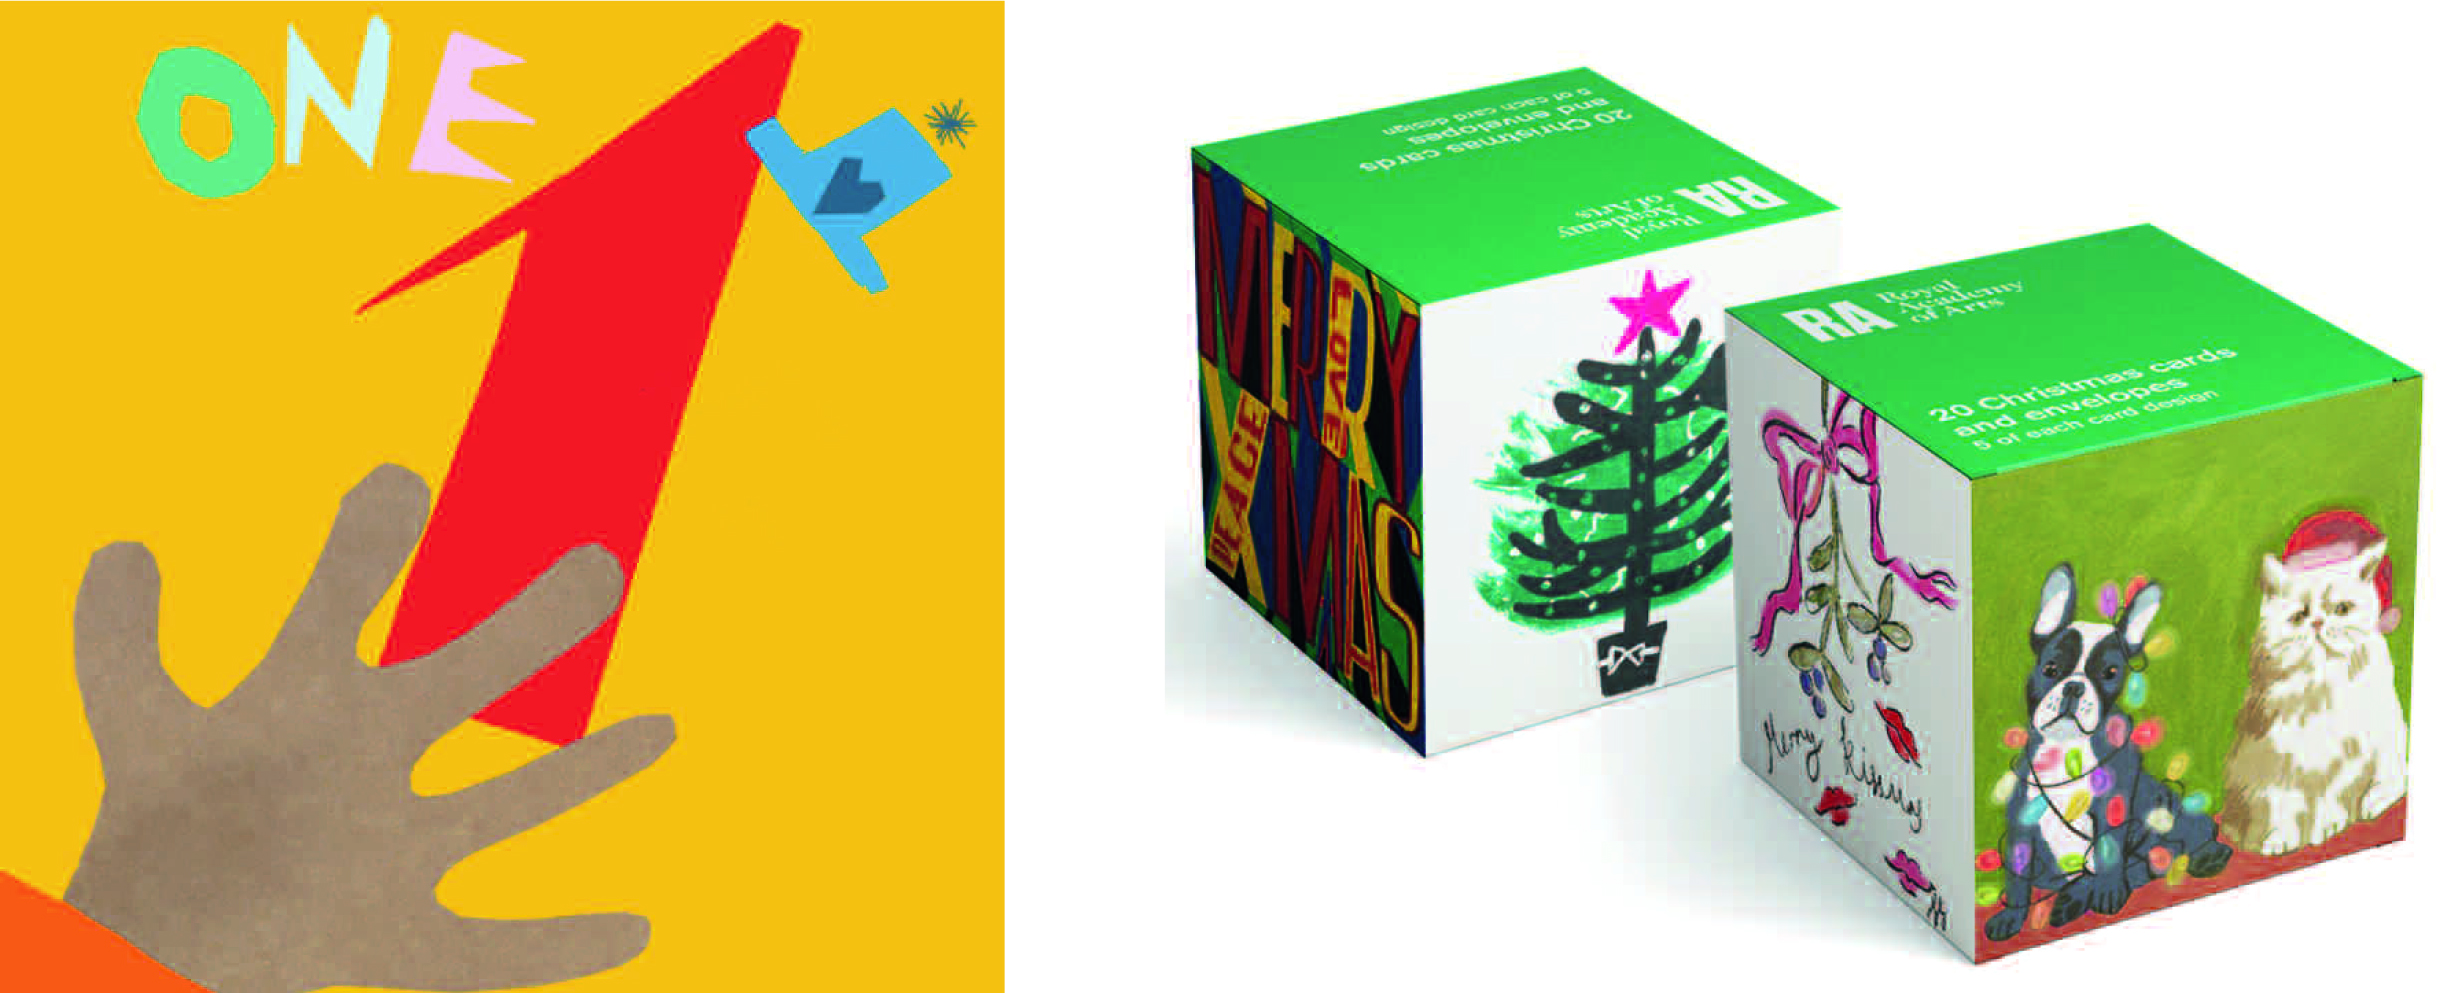 Above: Numero is Poet and Painter's first children's card range (left) and ArtPress will be showcasing its Royal Academy Christmas boxes (right).